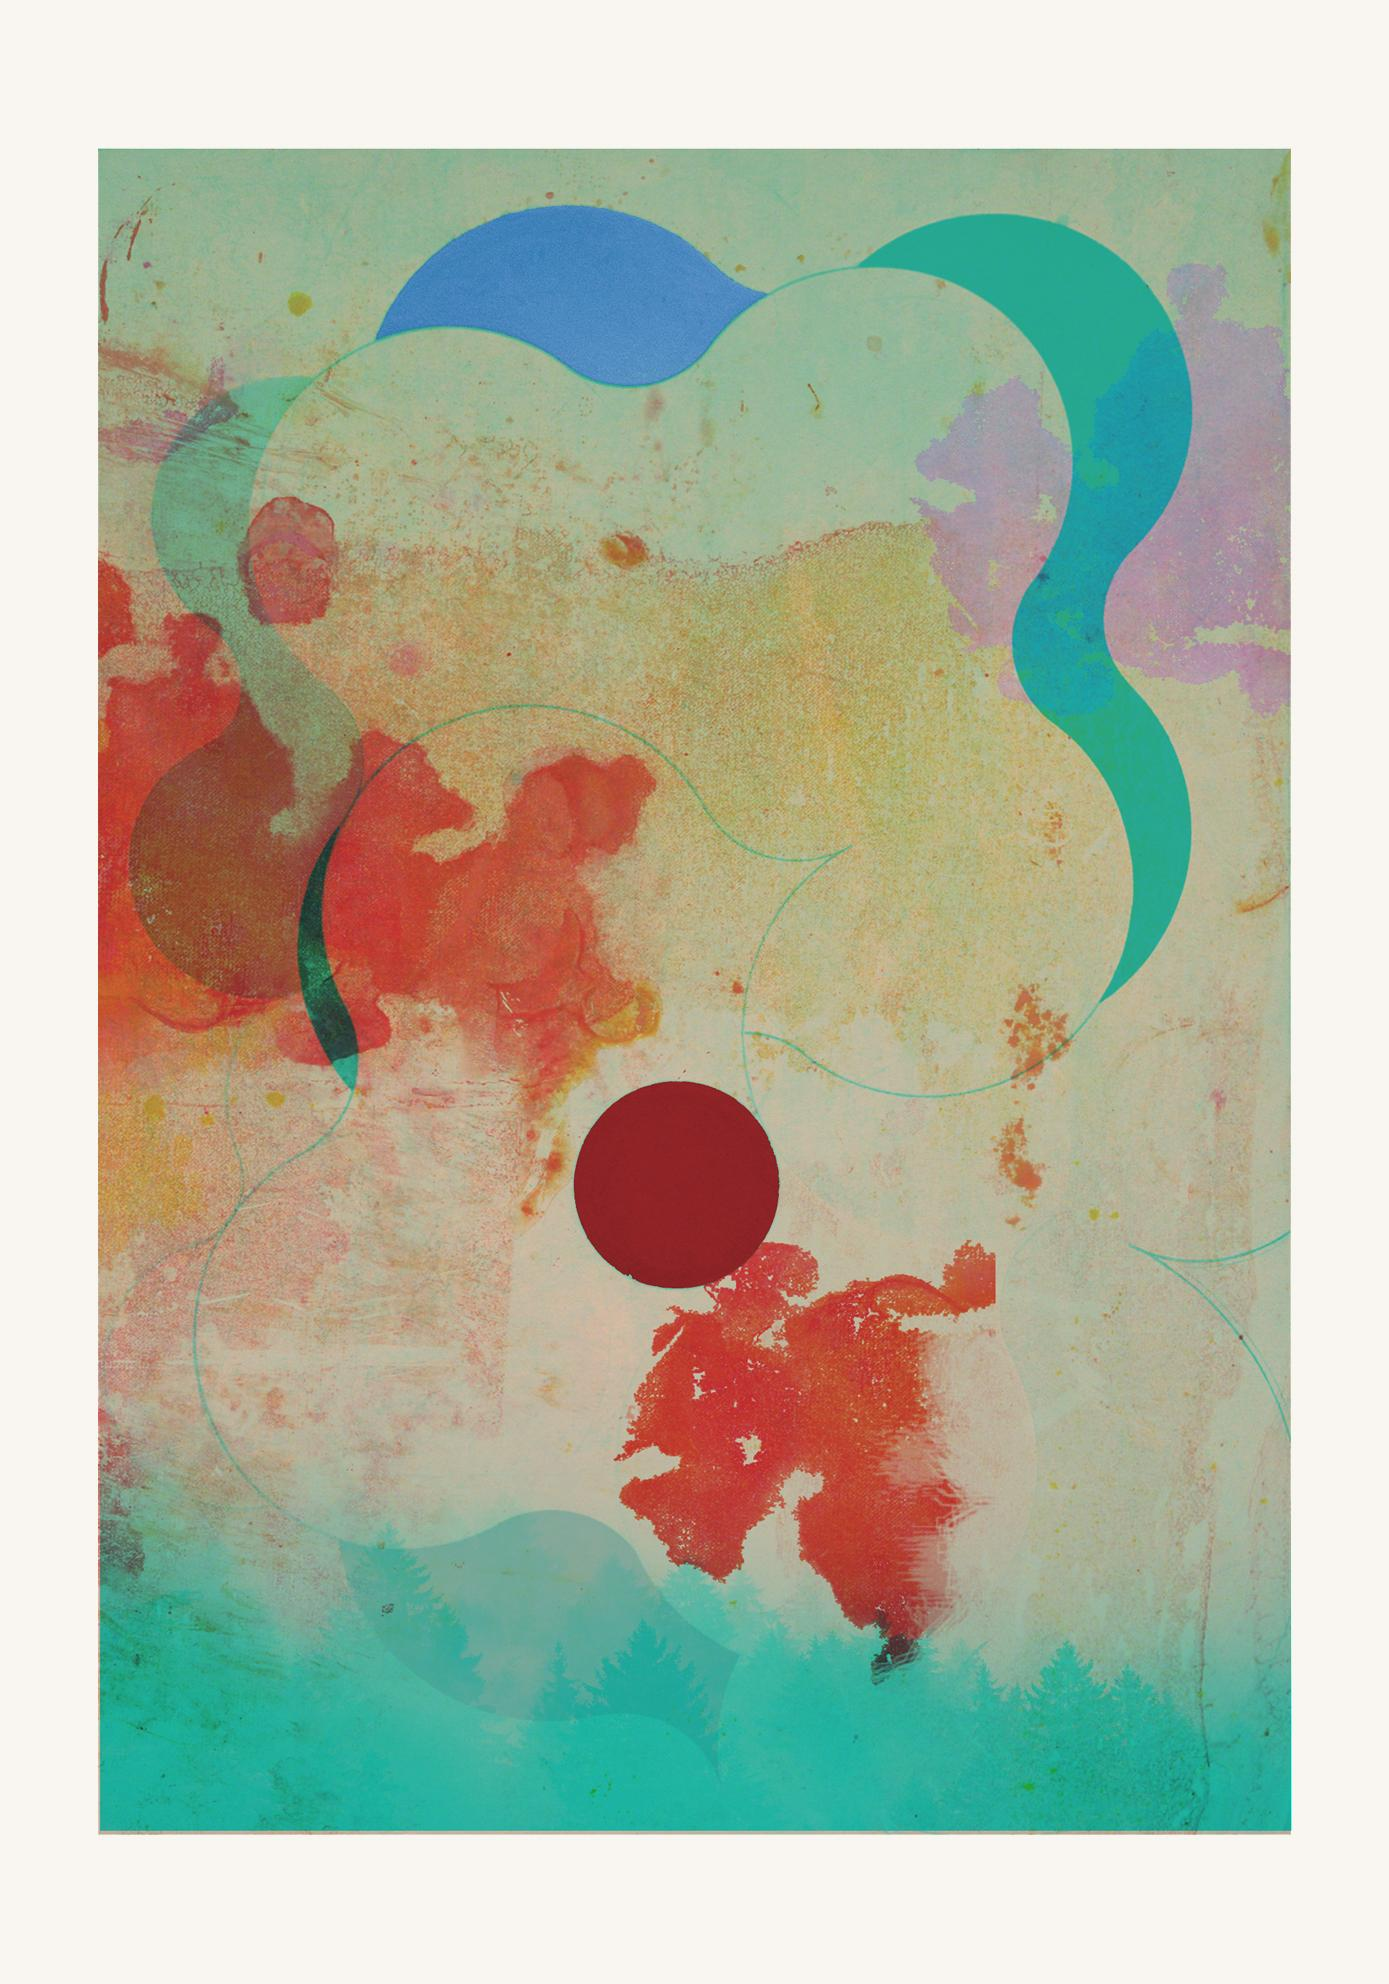 Forest 08 -Contemporary , Abstract, Gestual, , Pop, Modern, Geometric, landscape